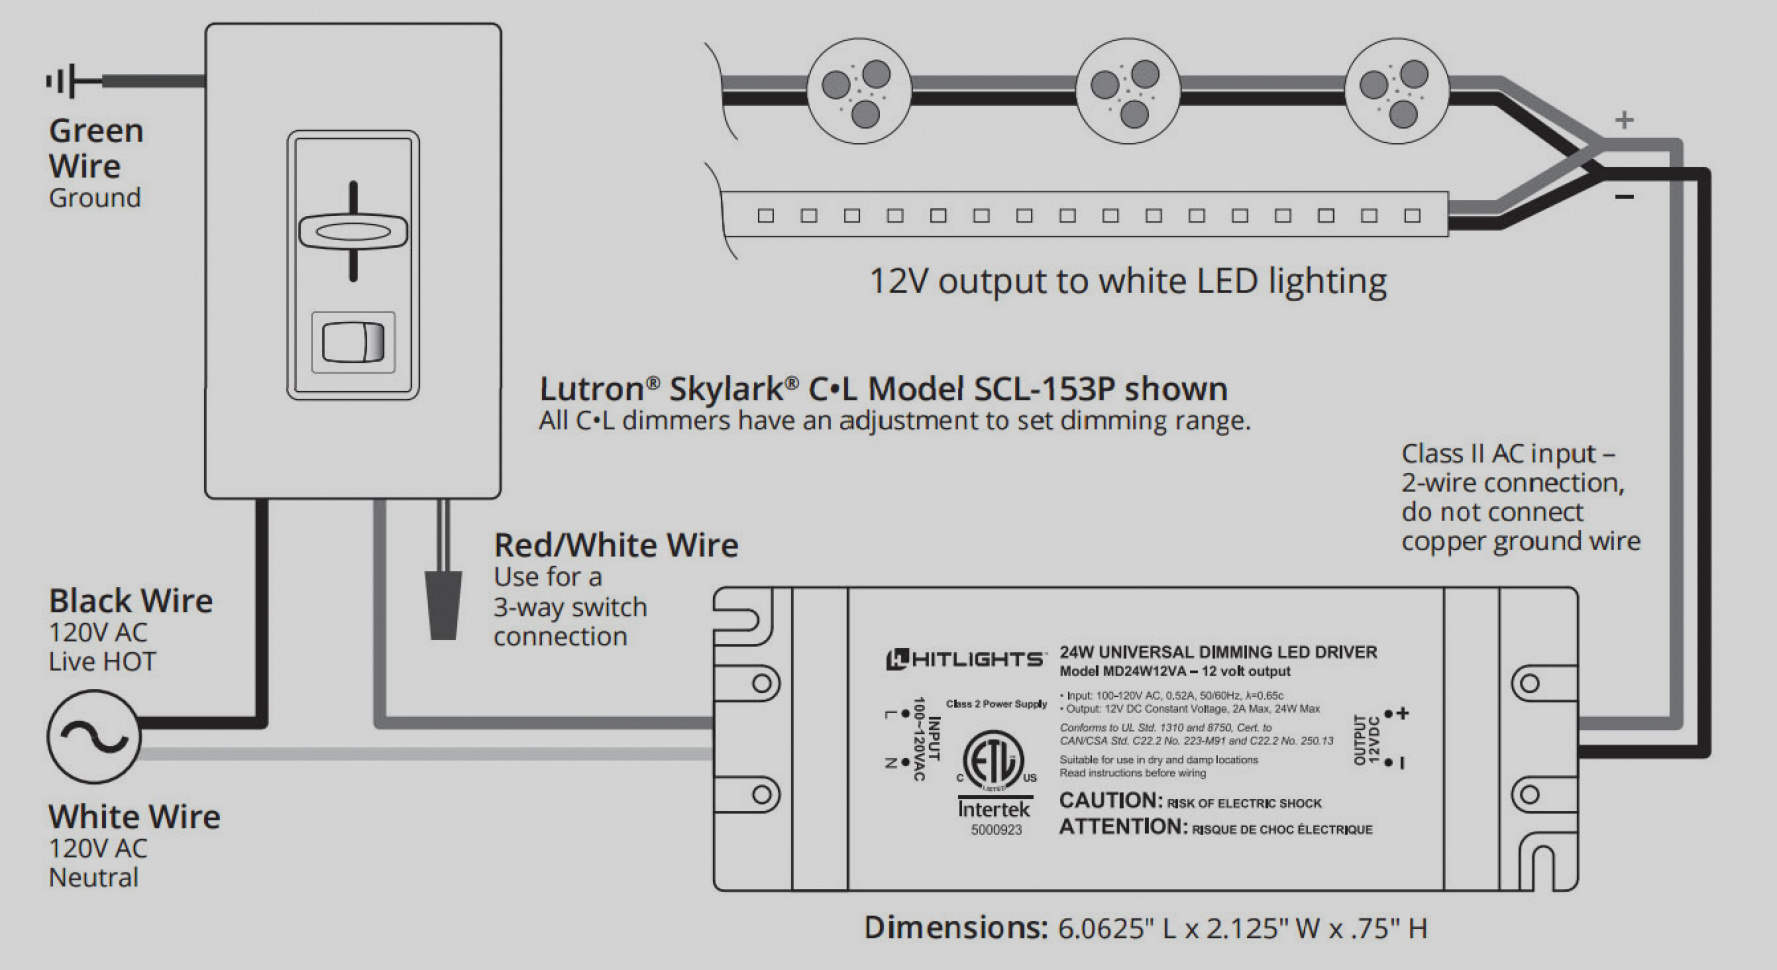 led driver wiring diagram Download-Best Led Strip Light Wiring Diagram DIY Project Tutorial LED Car Lighting New At 6-r